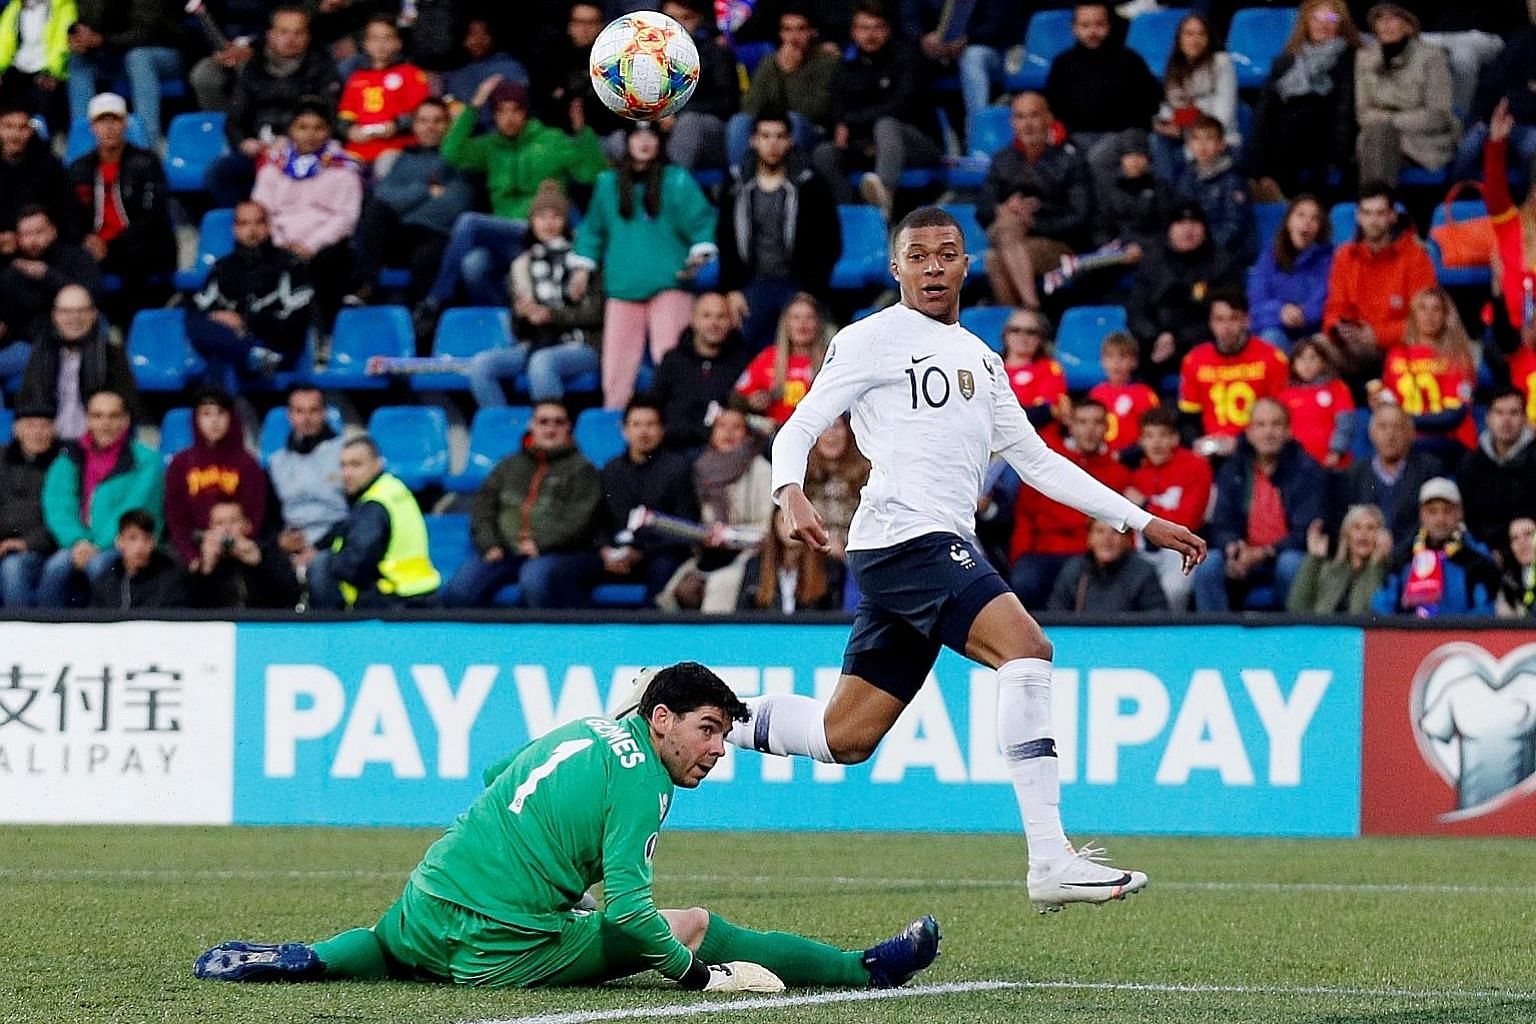 France forward Kylian Mbappe scoring the first goal in the 4-0 Euro 2020 qualifying win over Andorra on Tuesday. The French are now top of Group H on goal difference, bouncing back from a shock loss to Turkey last weekend.